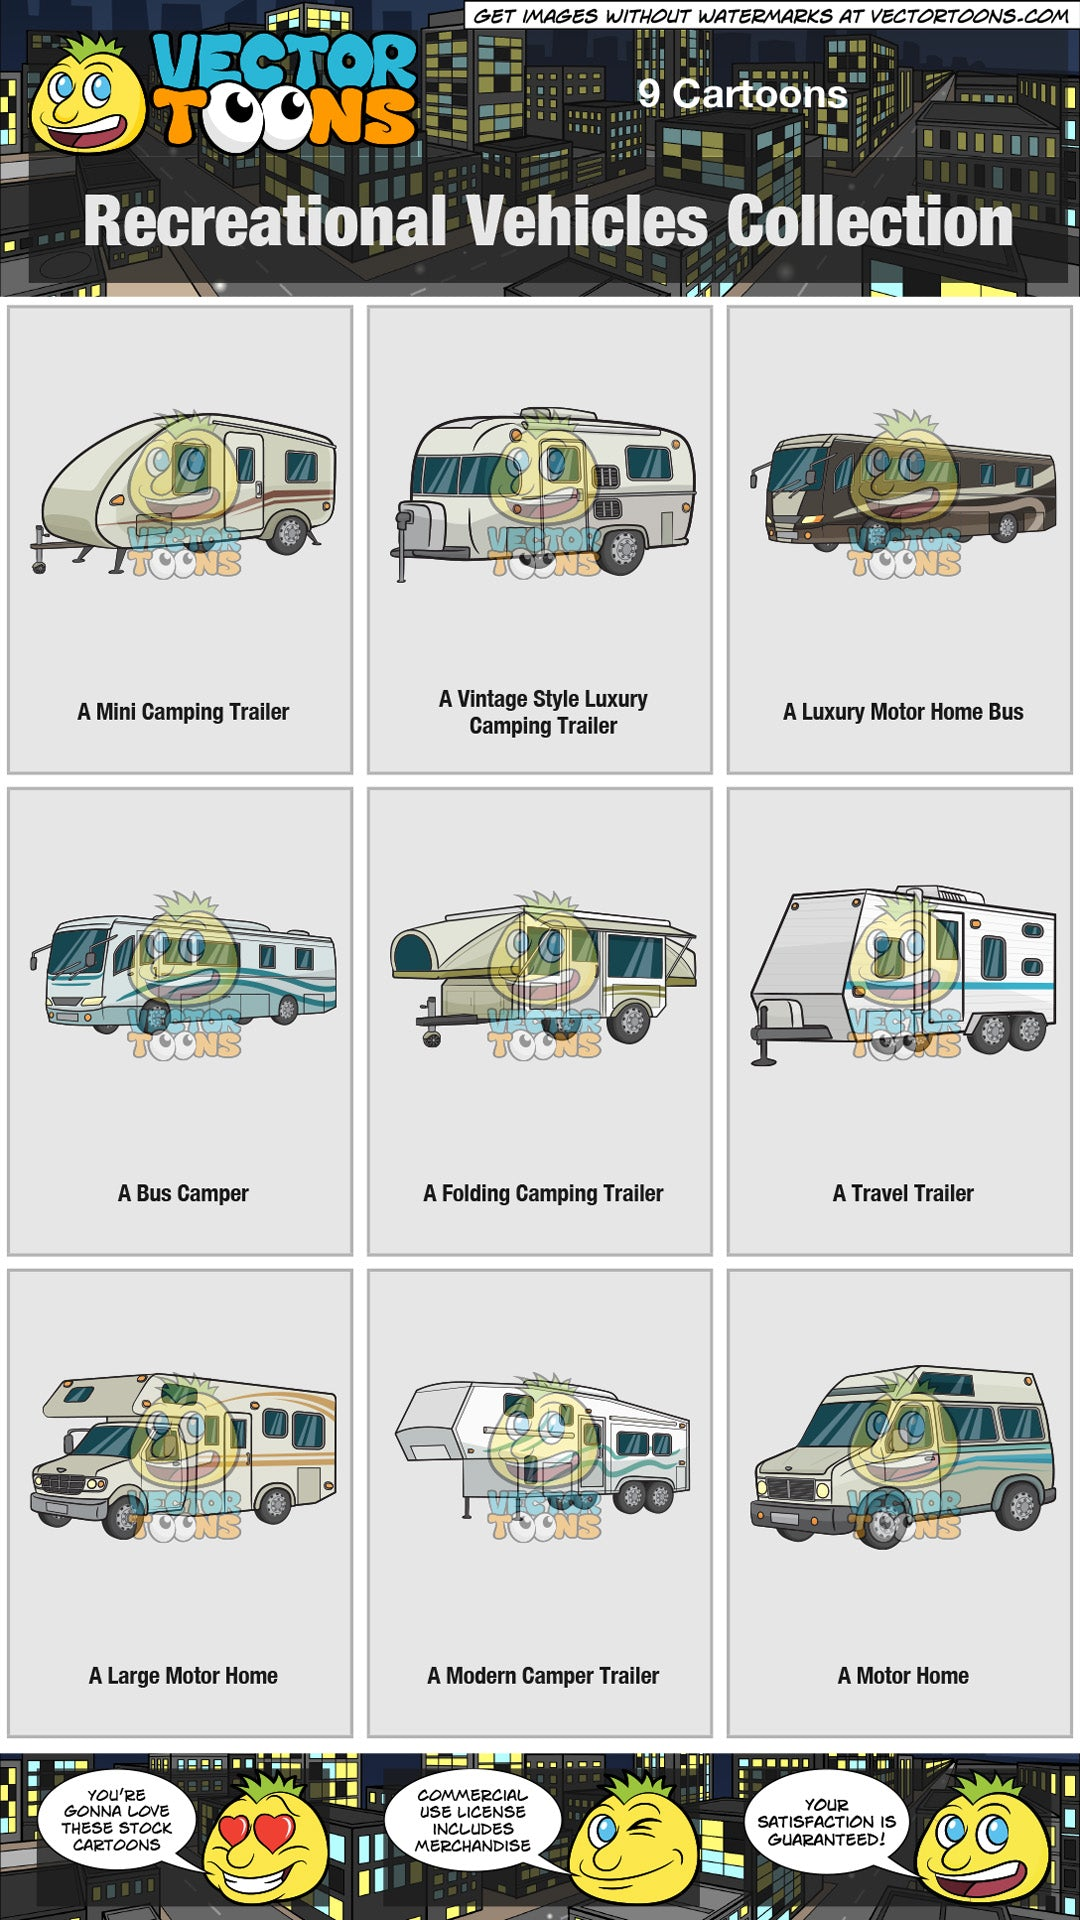 Recreational Vehicles Collection